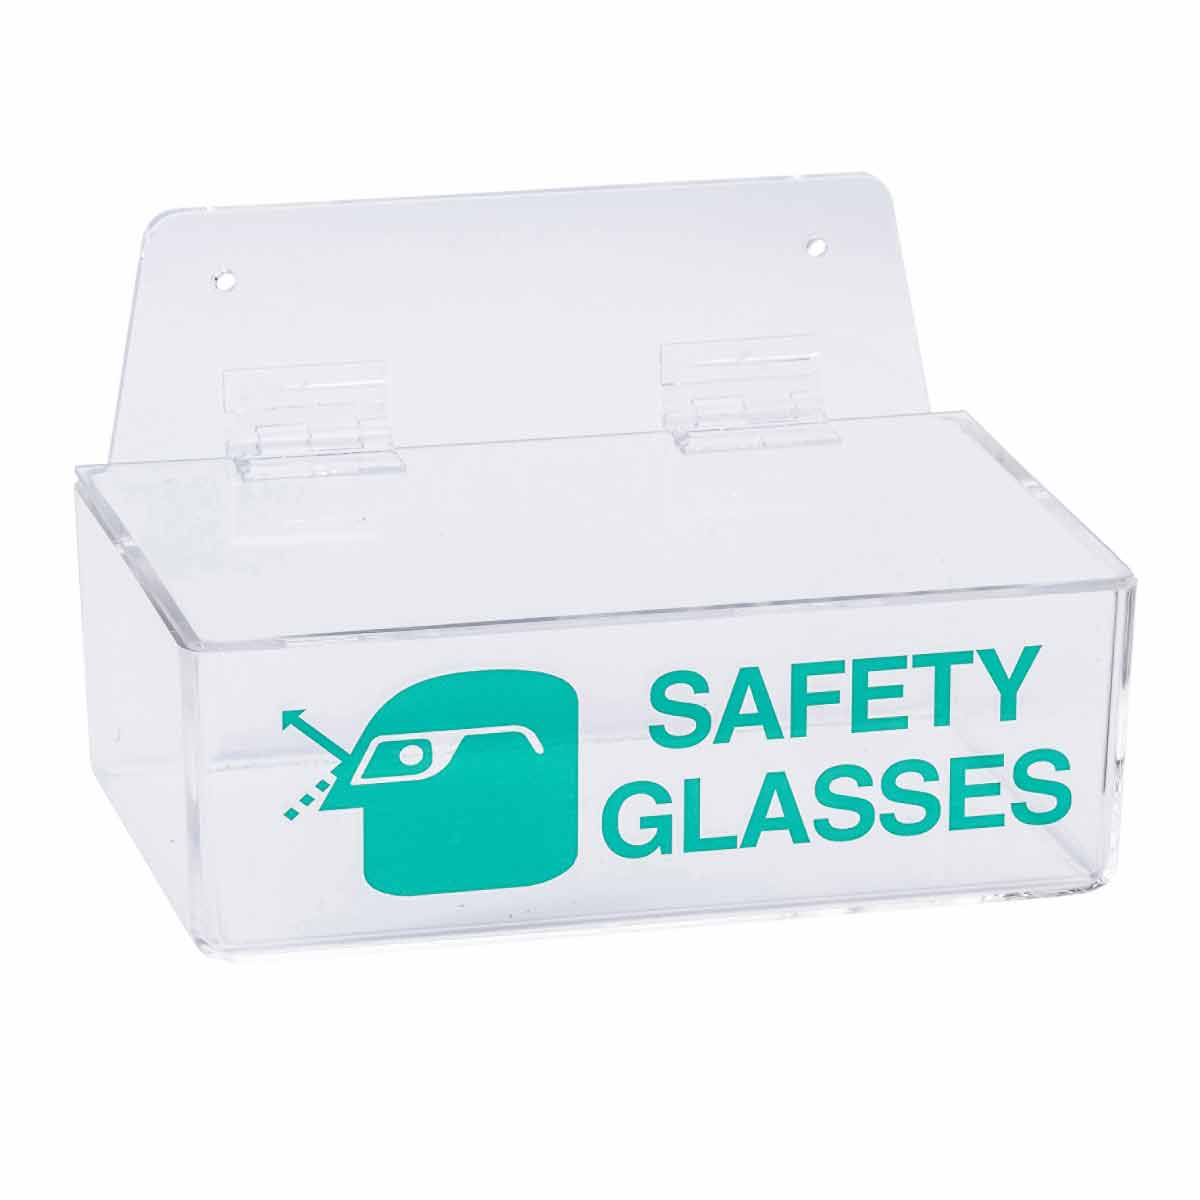 Brady® 2011 Open Top Safety Glass Holder, 4 to 6 Pair Capacity, 3 in H x 9 in W x 6 in D, Plastic, Surface Mount